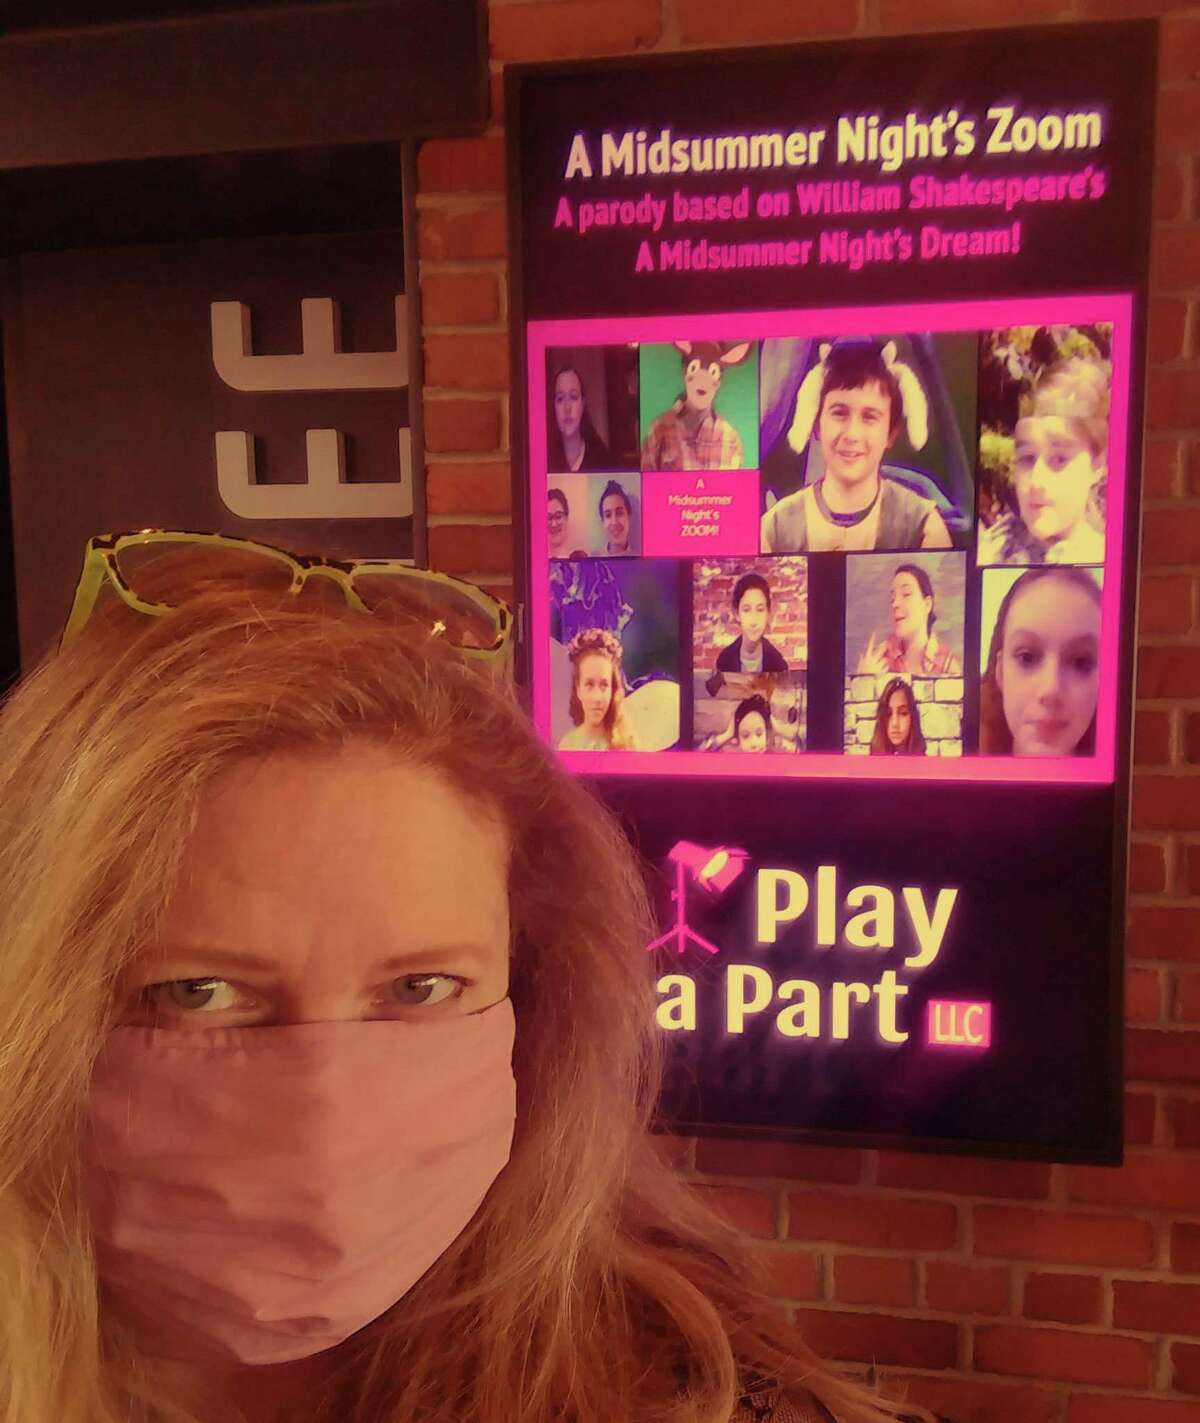 """Play a Part's production of """"A Midsummer Night's Zoom"""" screened at The Prospector Theater earlier this year. It raised more than $700 in ticket sales, which benefitted the nonprofit."""